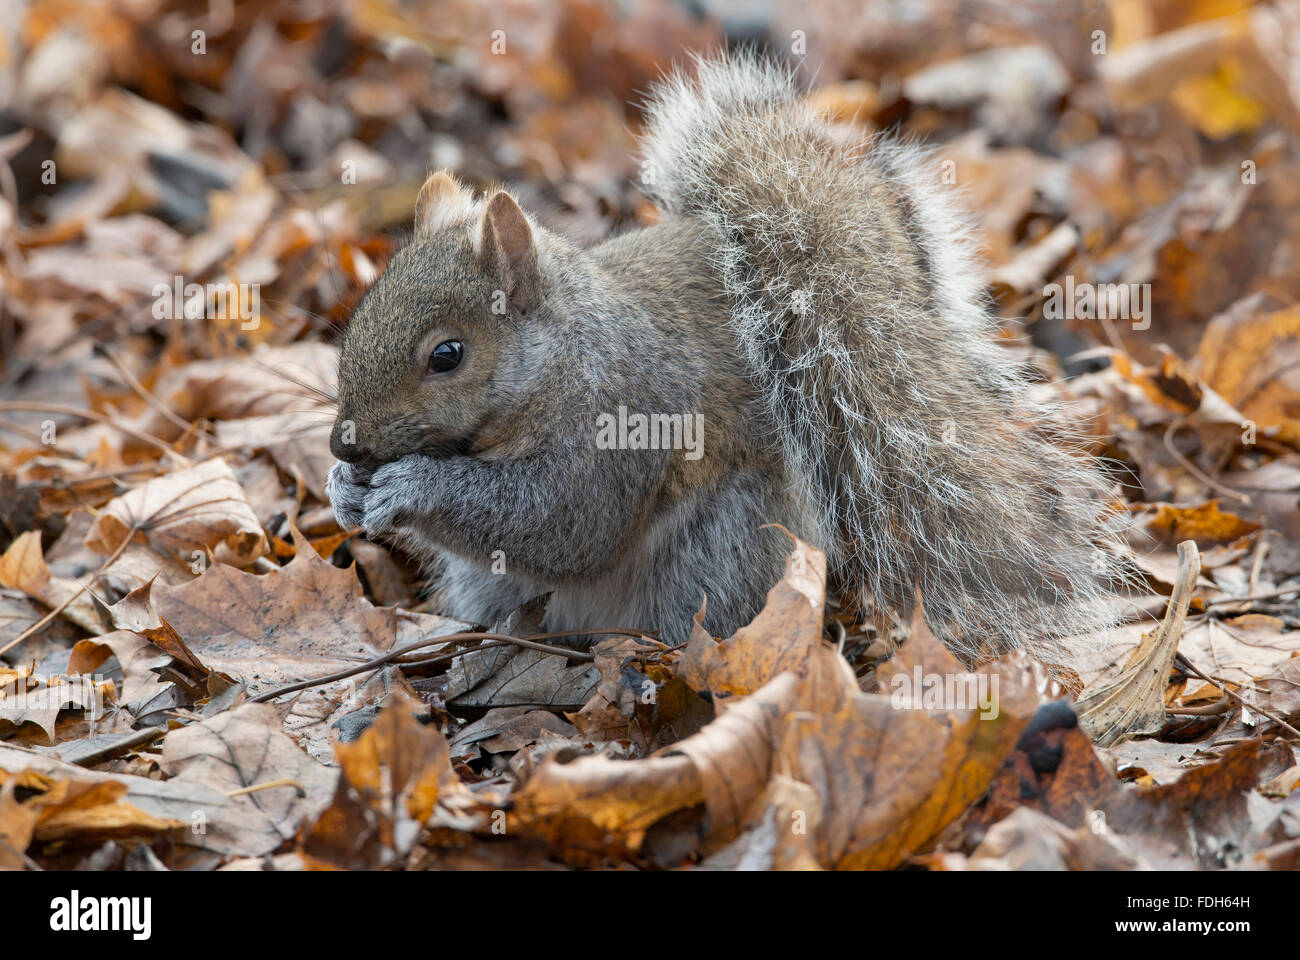 Eastern Gray Squirrel (Sciurus carolinensis) on forest floor, eating nuts, Autumn, E North America - Stock Image